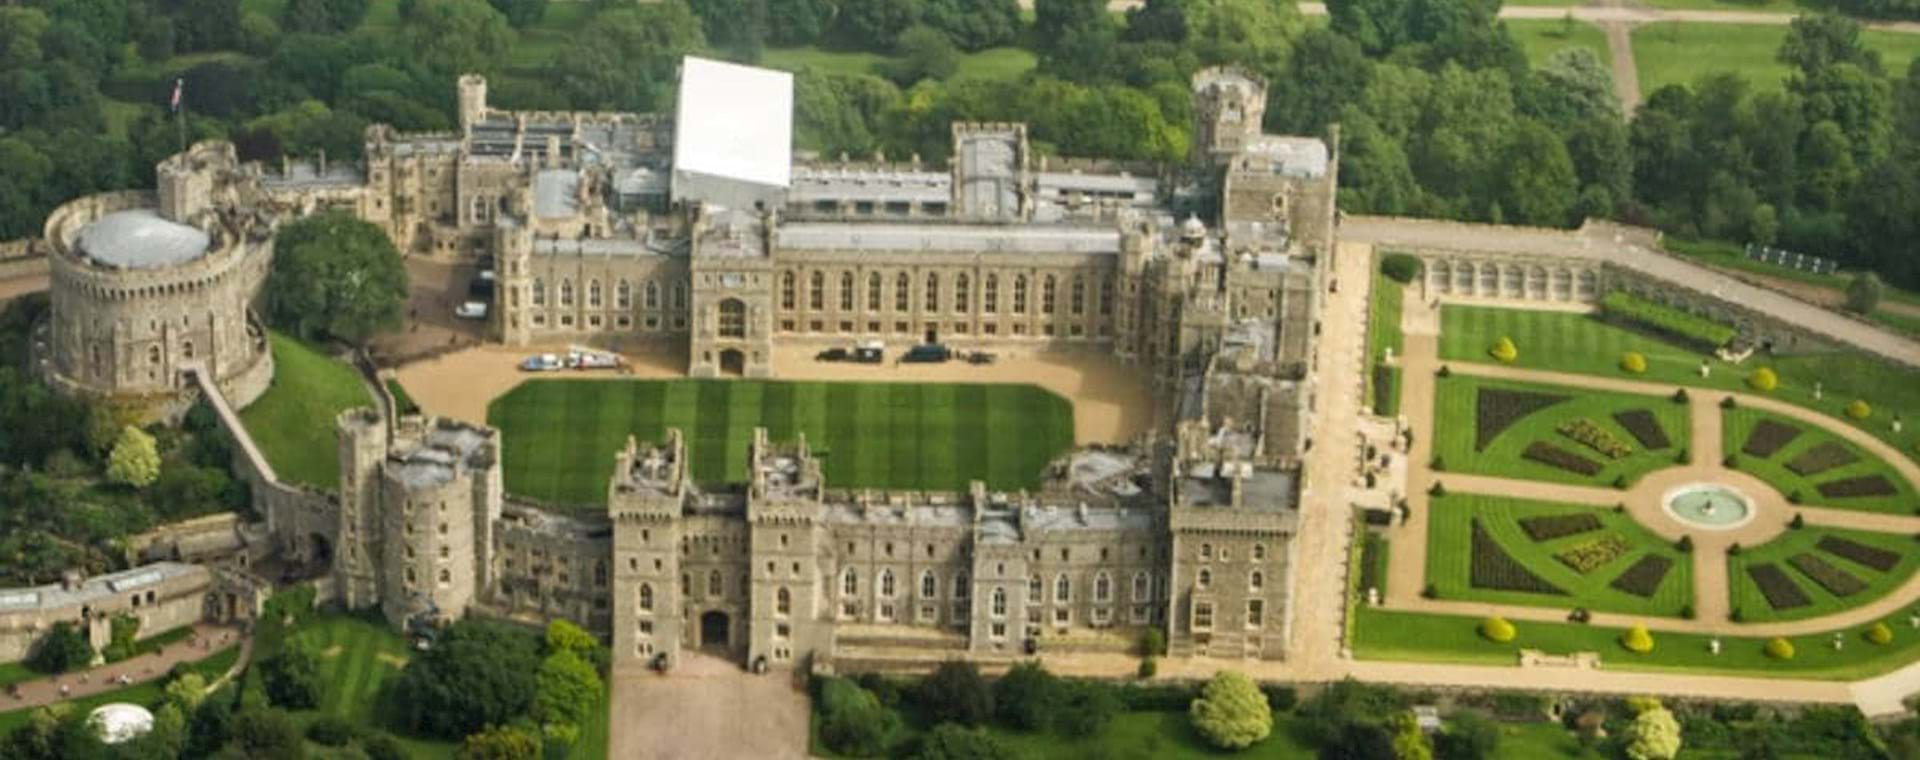 Areal view of Windsor castle